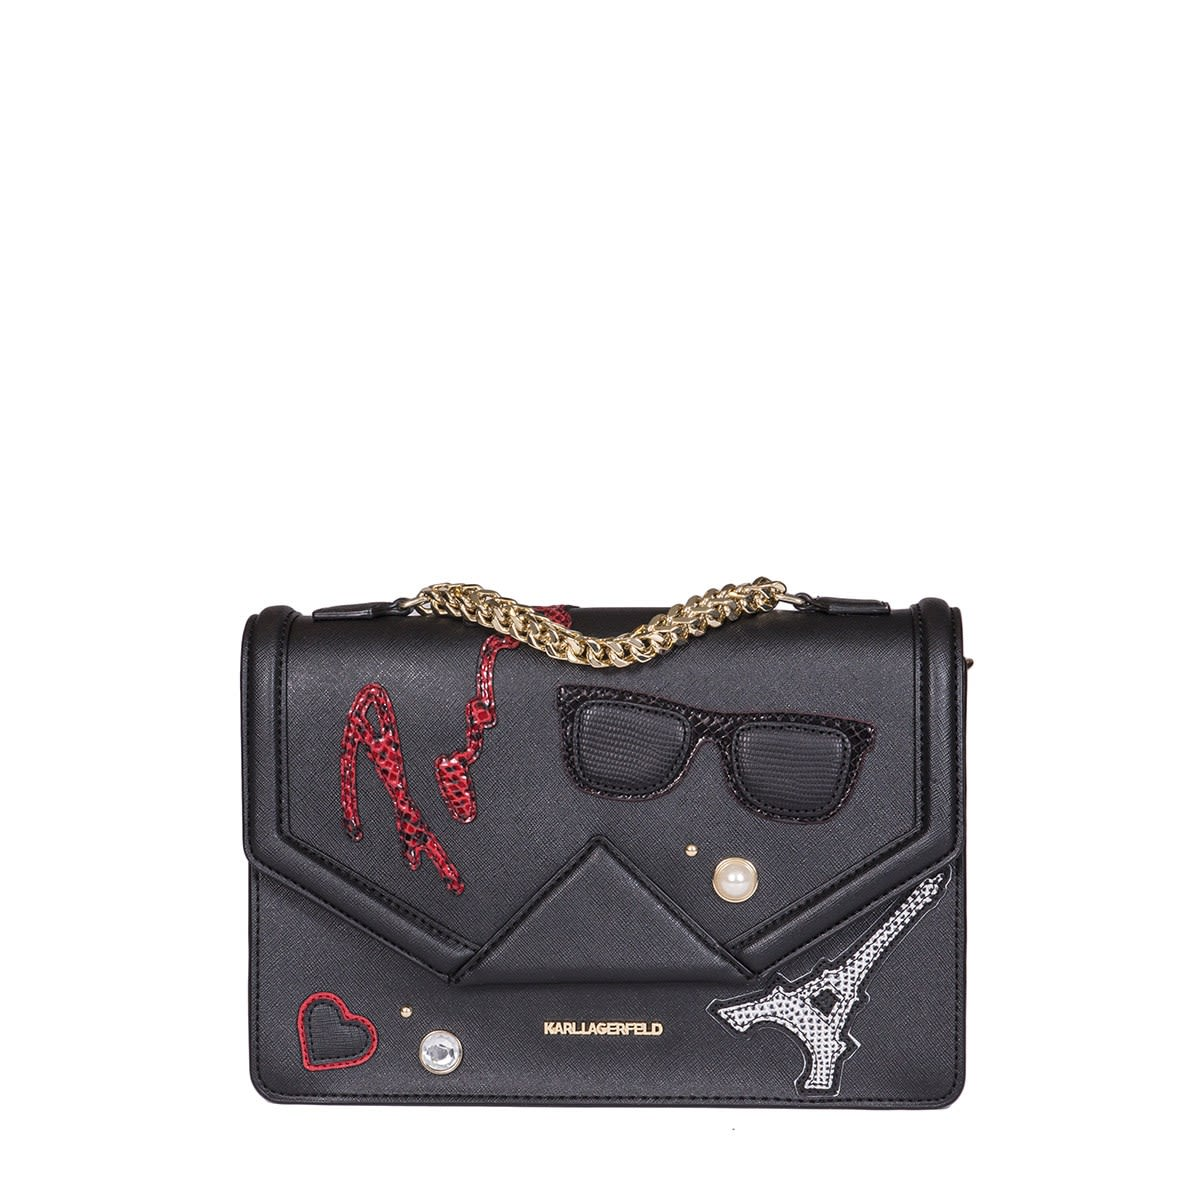 logo patch shoulder bag - Black Karl Lagerfeld Professional For Sale Low Price Fee Shipping Sale Online Orange 100% Original Great Deals Cheap Price Discount With Paypal Z0moysA